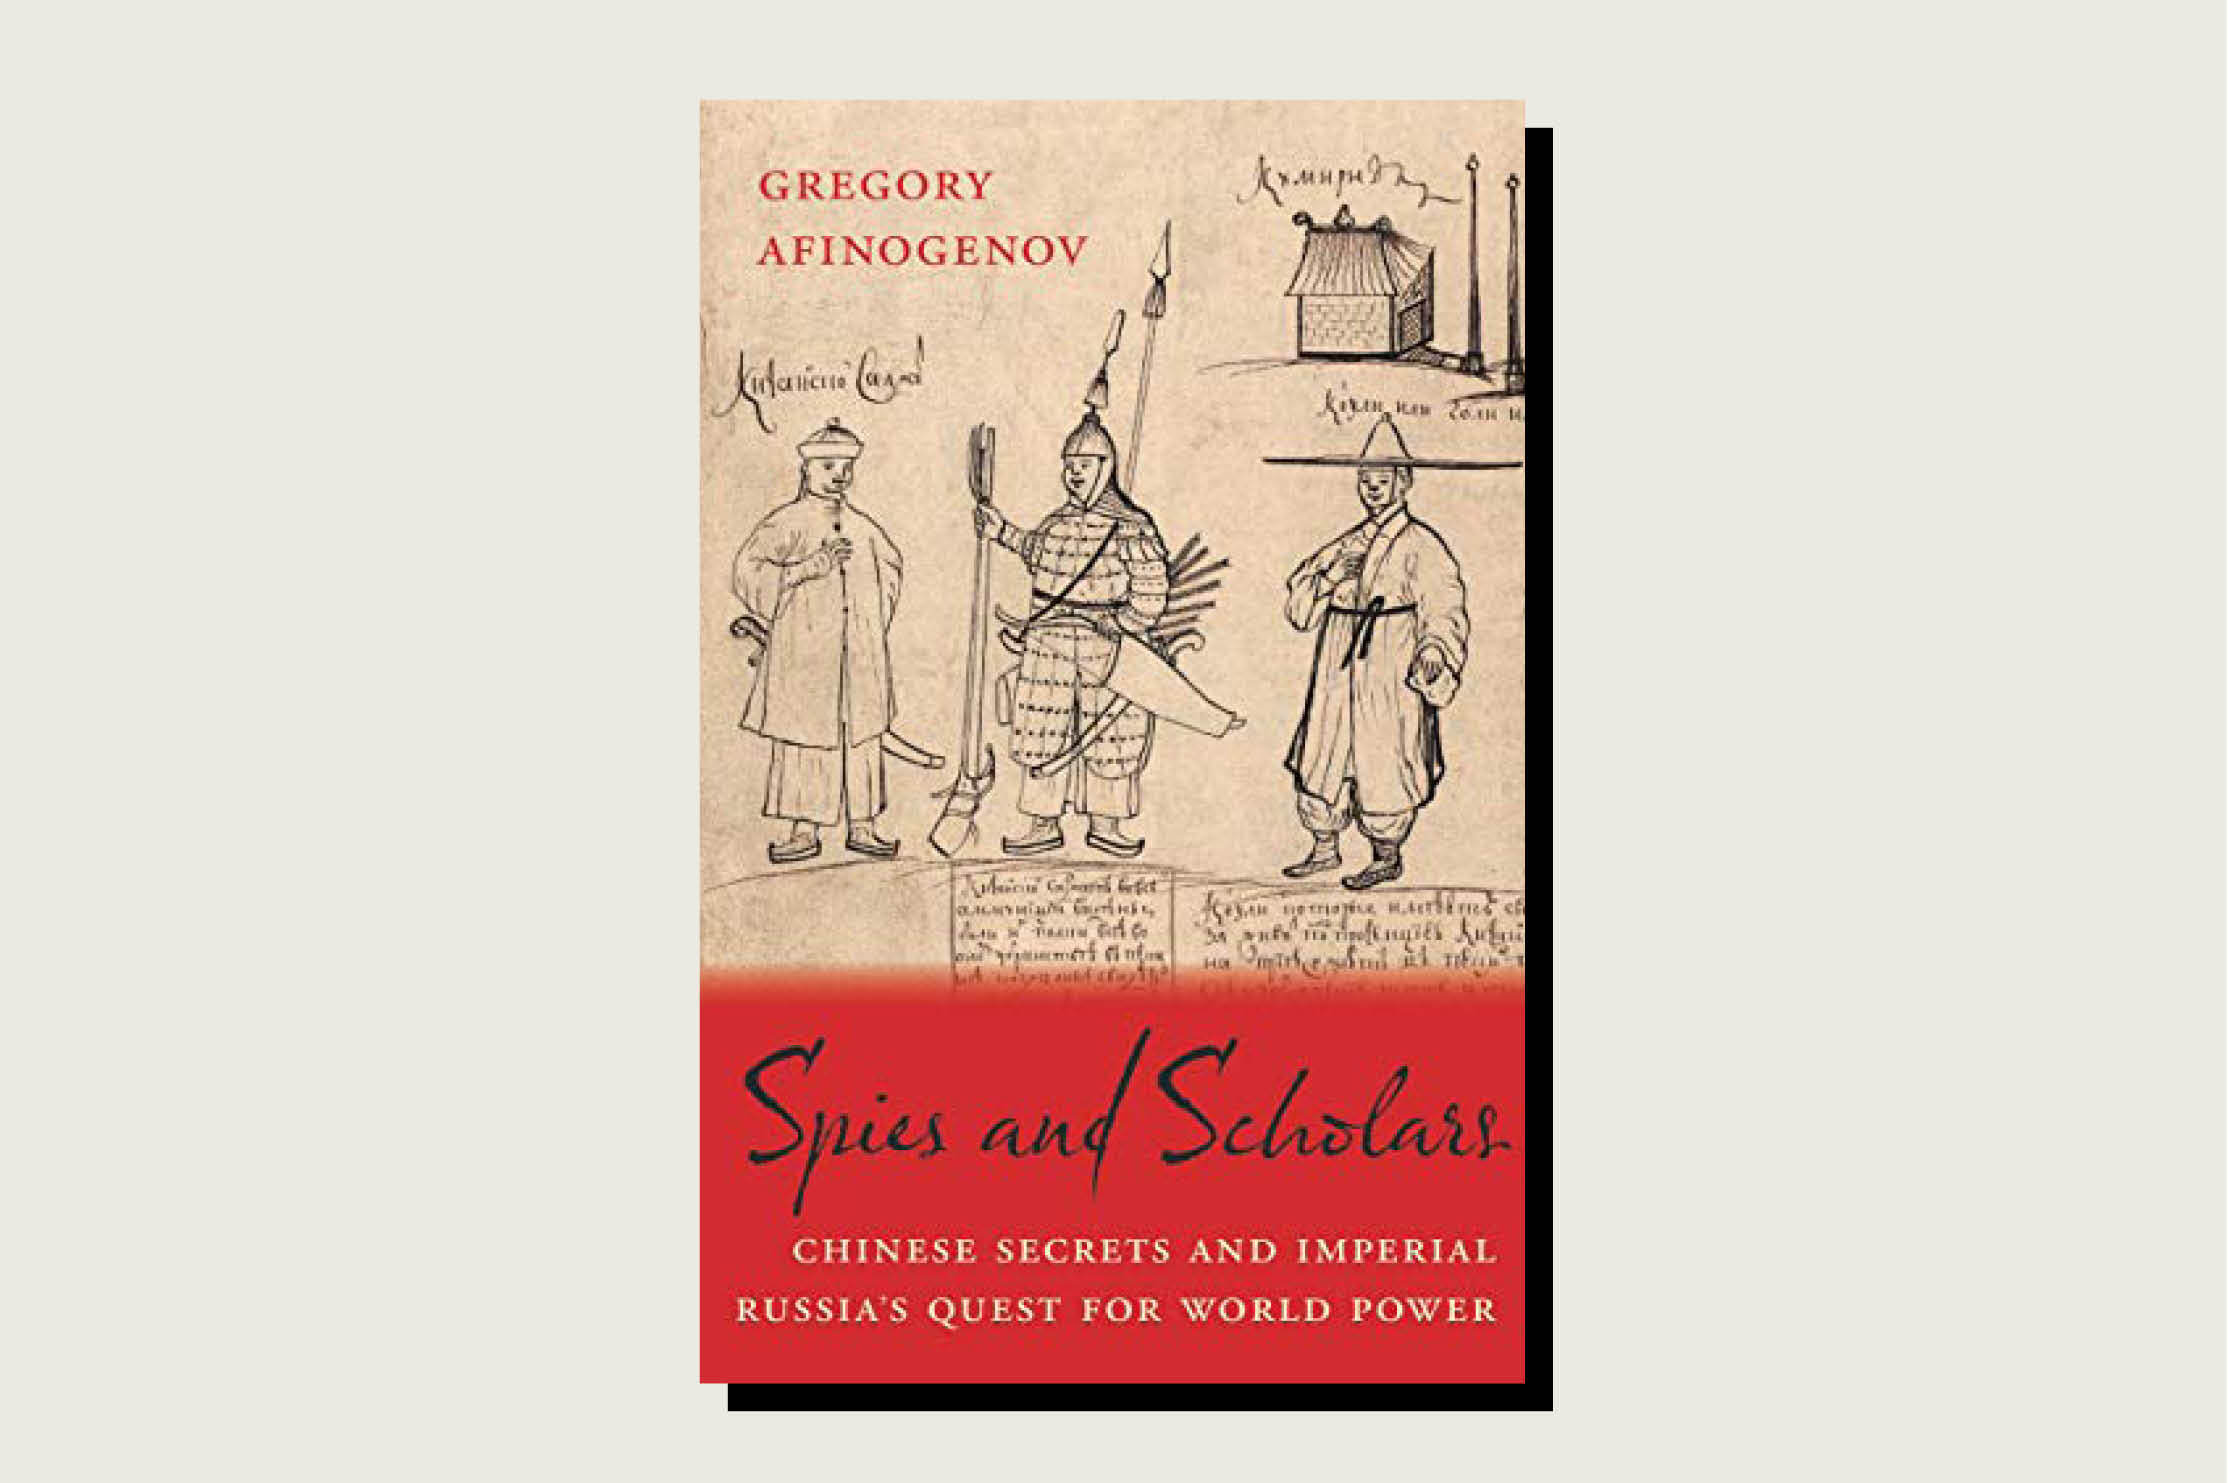 Spies and Scholars: Chinese Secrets and Imperial Russia's Quest for World Power, Gregory Afinogenov, Harvard University Press, April 14, 2020.